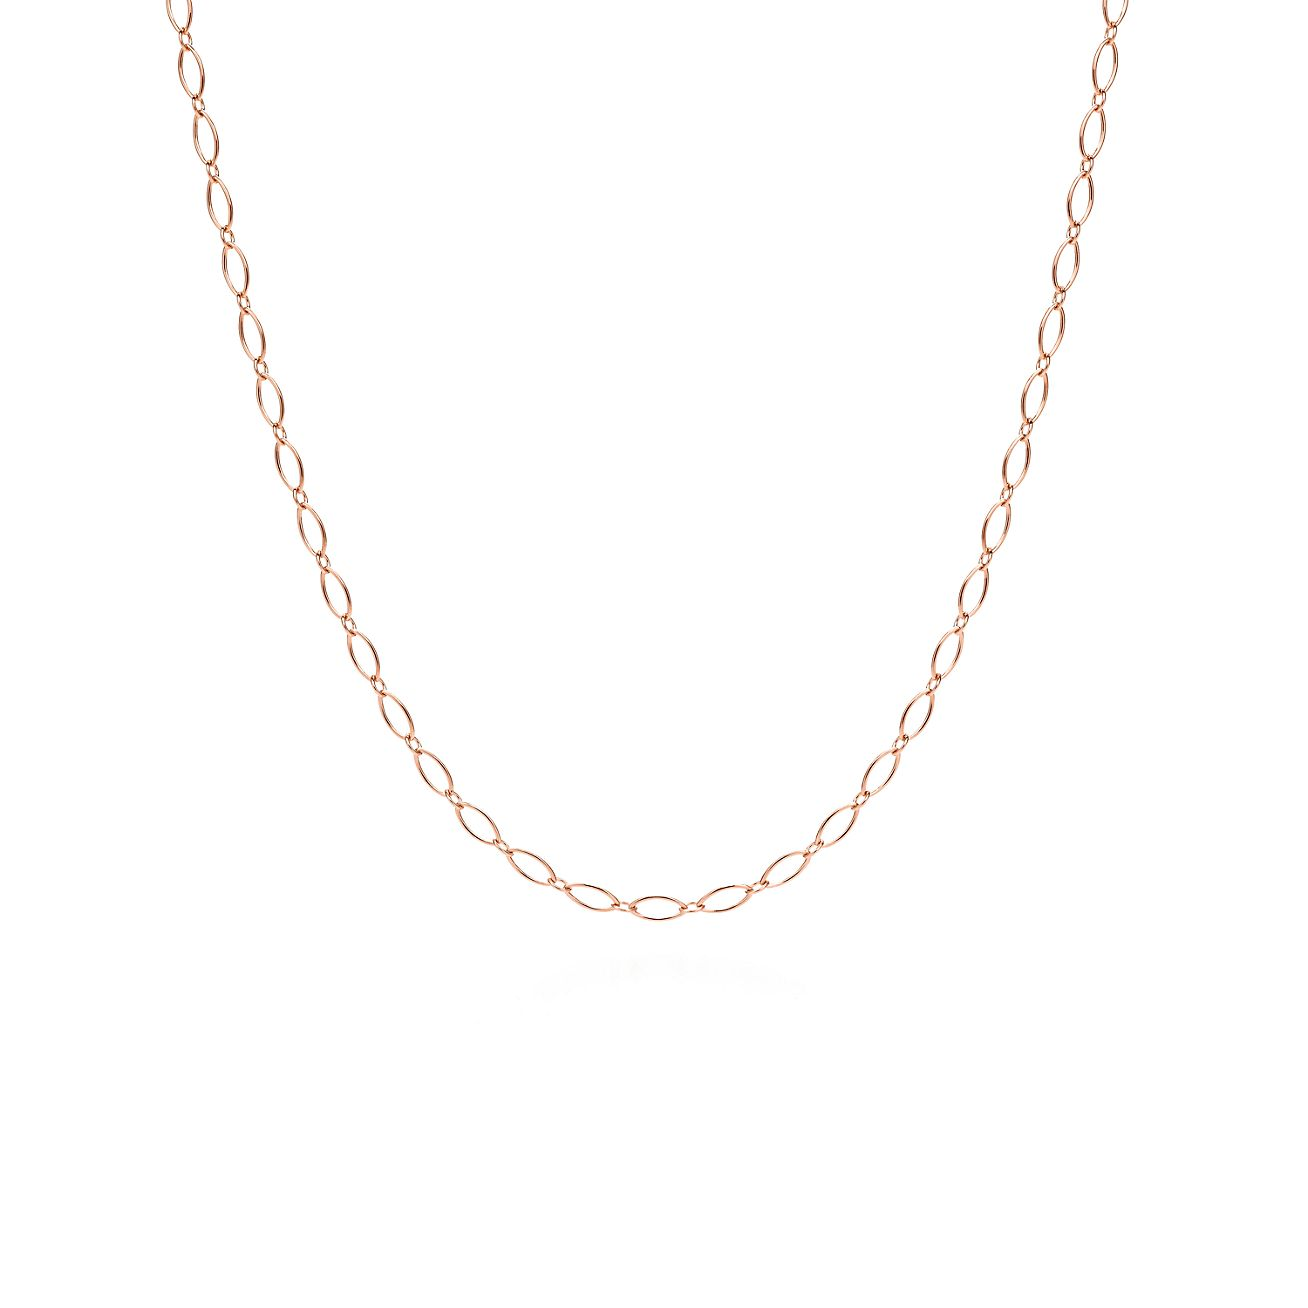 lyst silver oval ippolita product chains in glamazon metallic sterling link jewelry gallery normal necklace